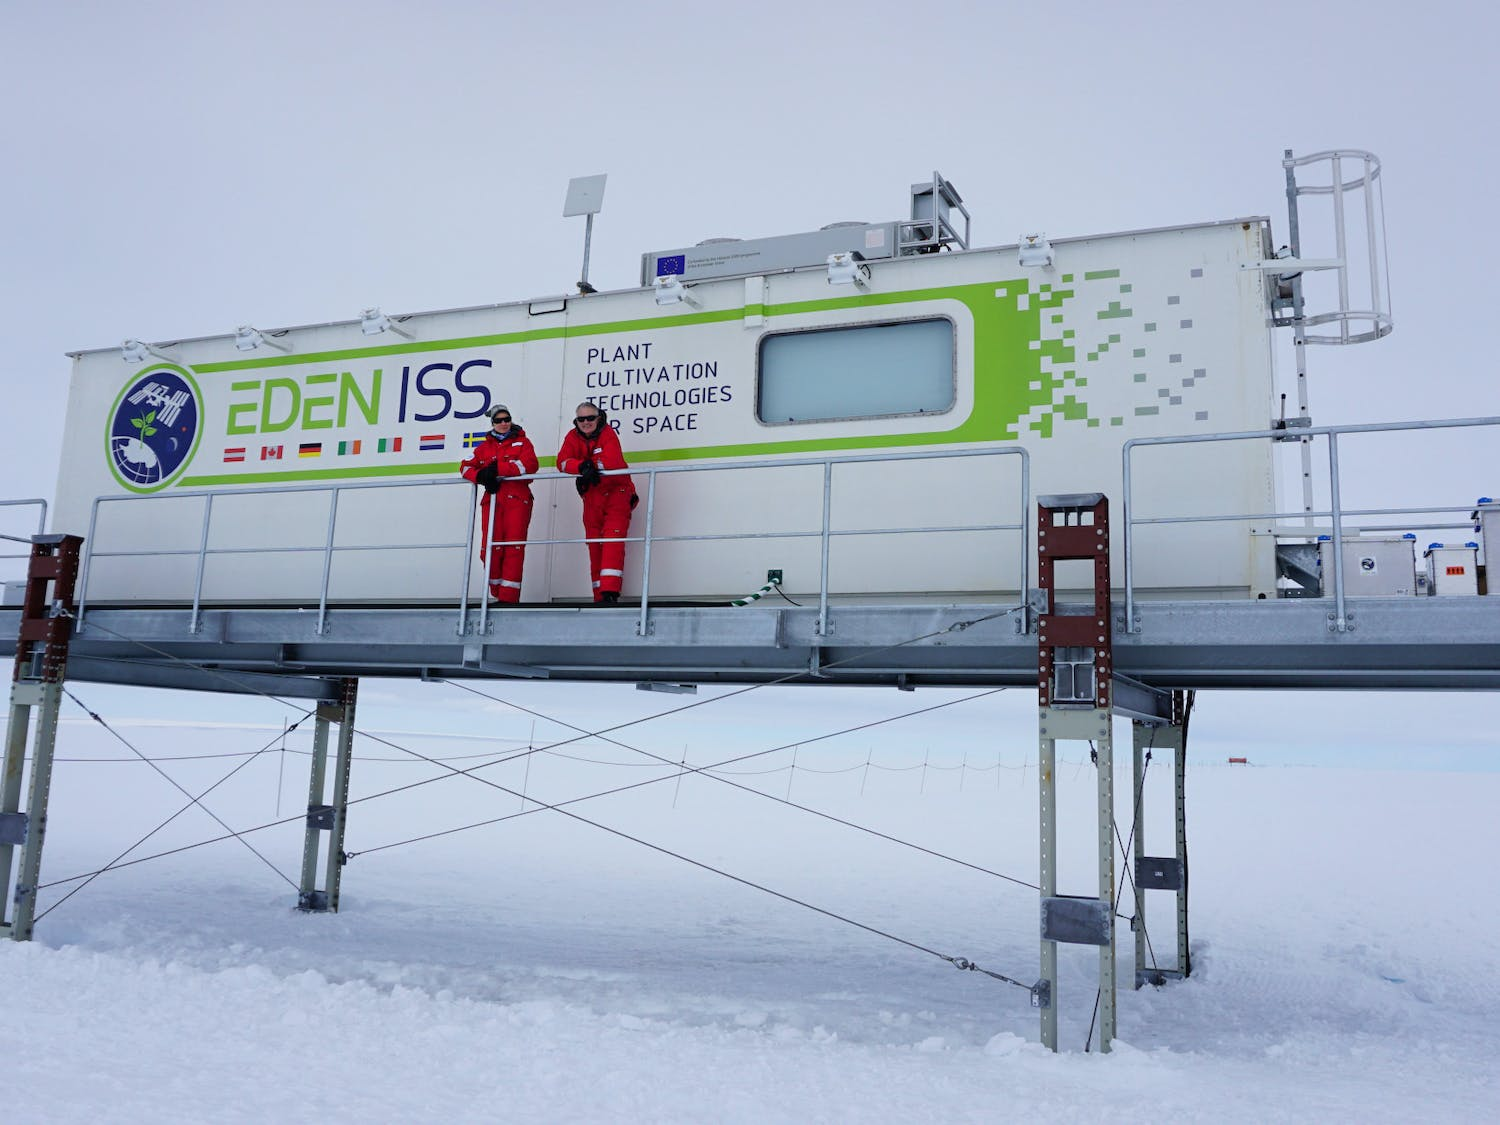 Anna-Lisa Paul (left) and Robert Ferl, (right) the principal investigators of the UF space plants lab, stand outside of the EDEN ISS greenhouse in Antarctica where plants are cultivated in extreme conditions with the goal of learning how to successfully grow plants in space.